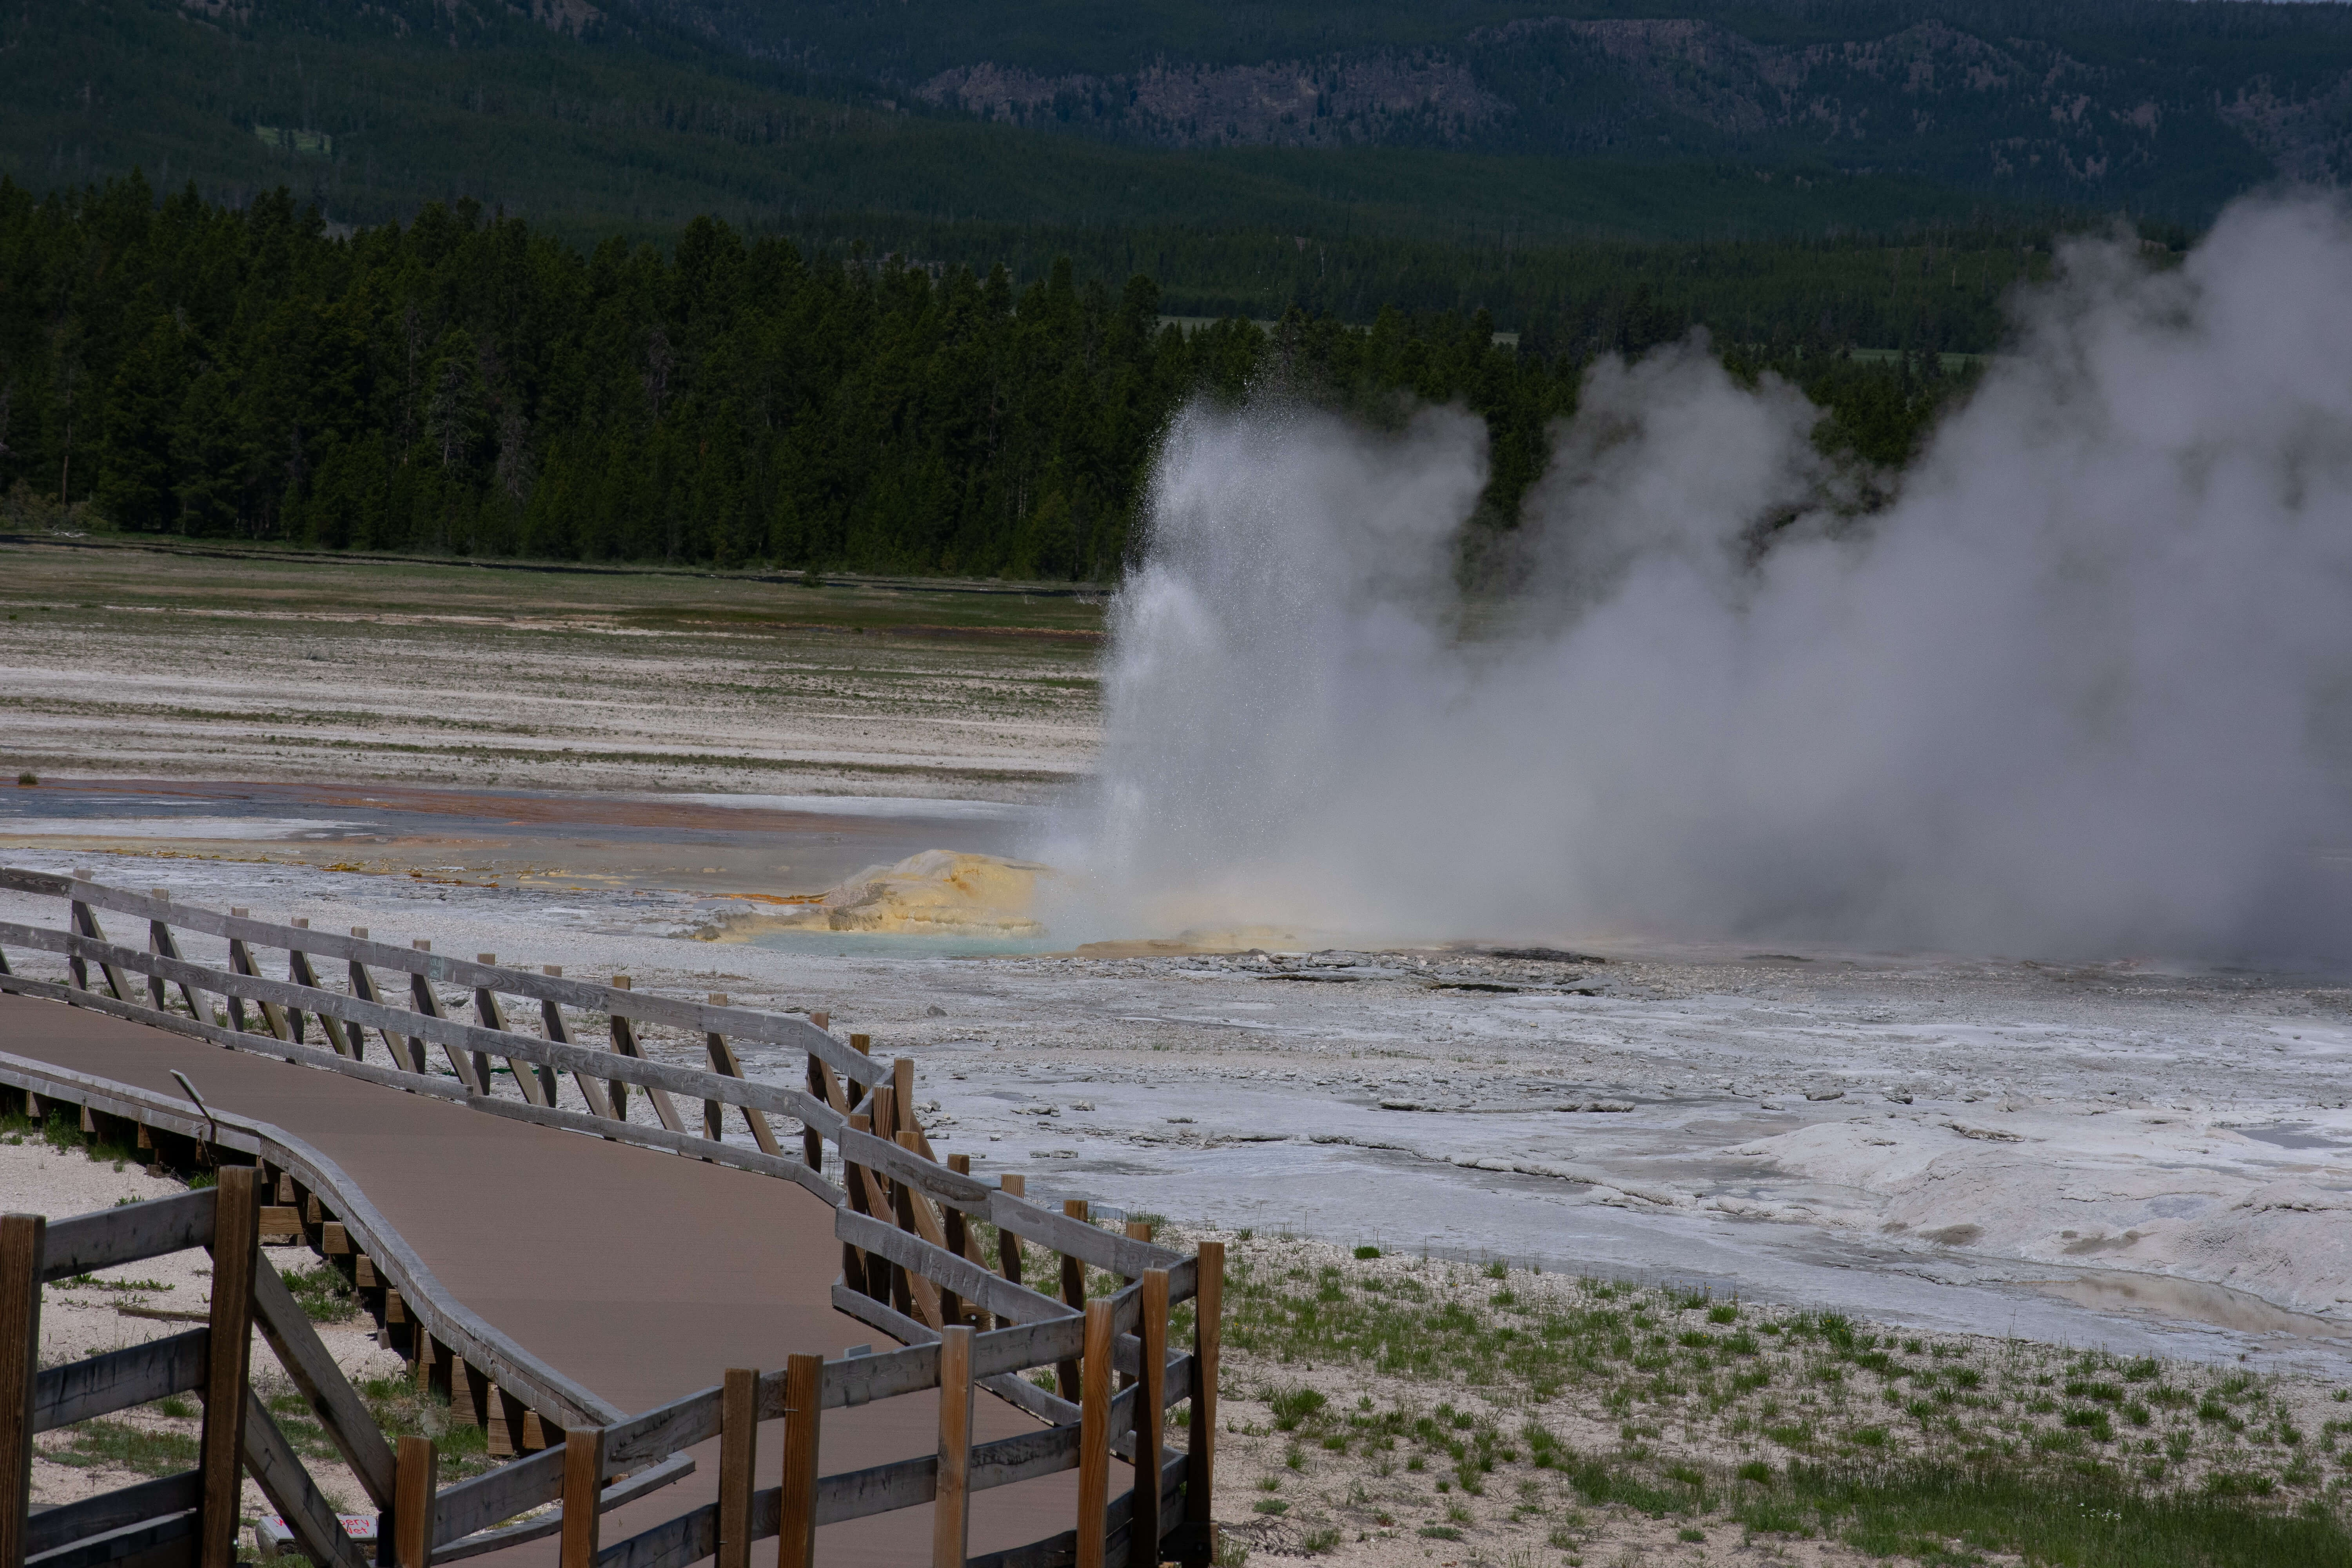 Geyser erupting Yellowstone National Park